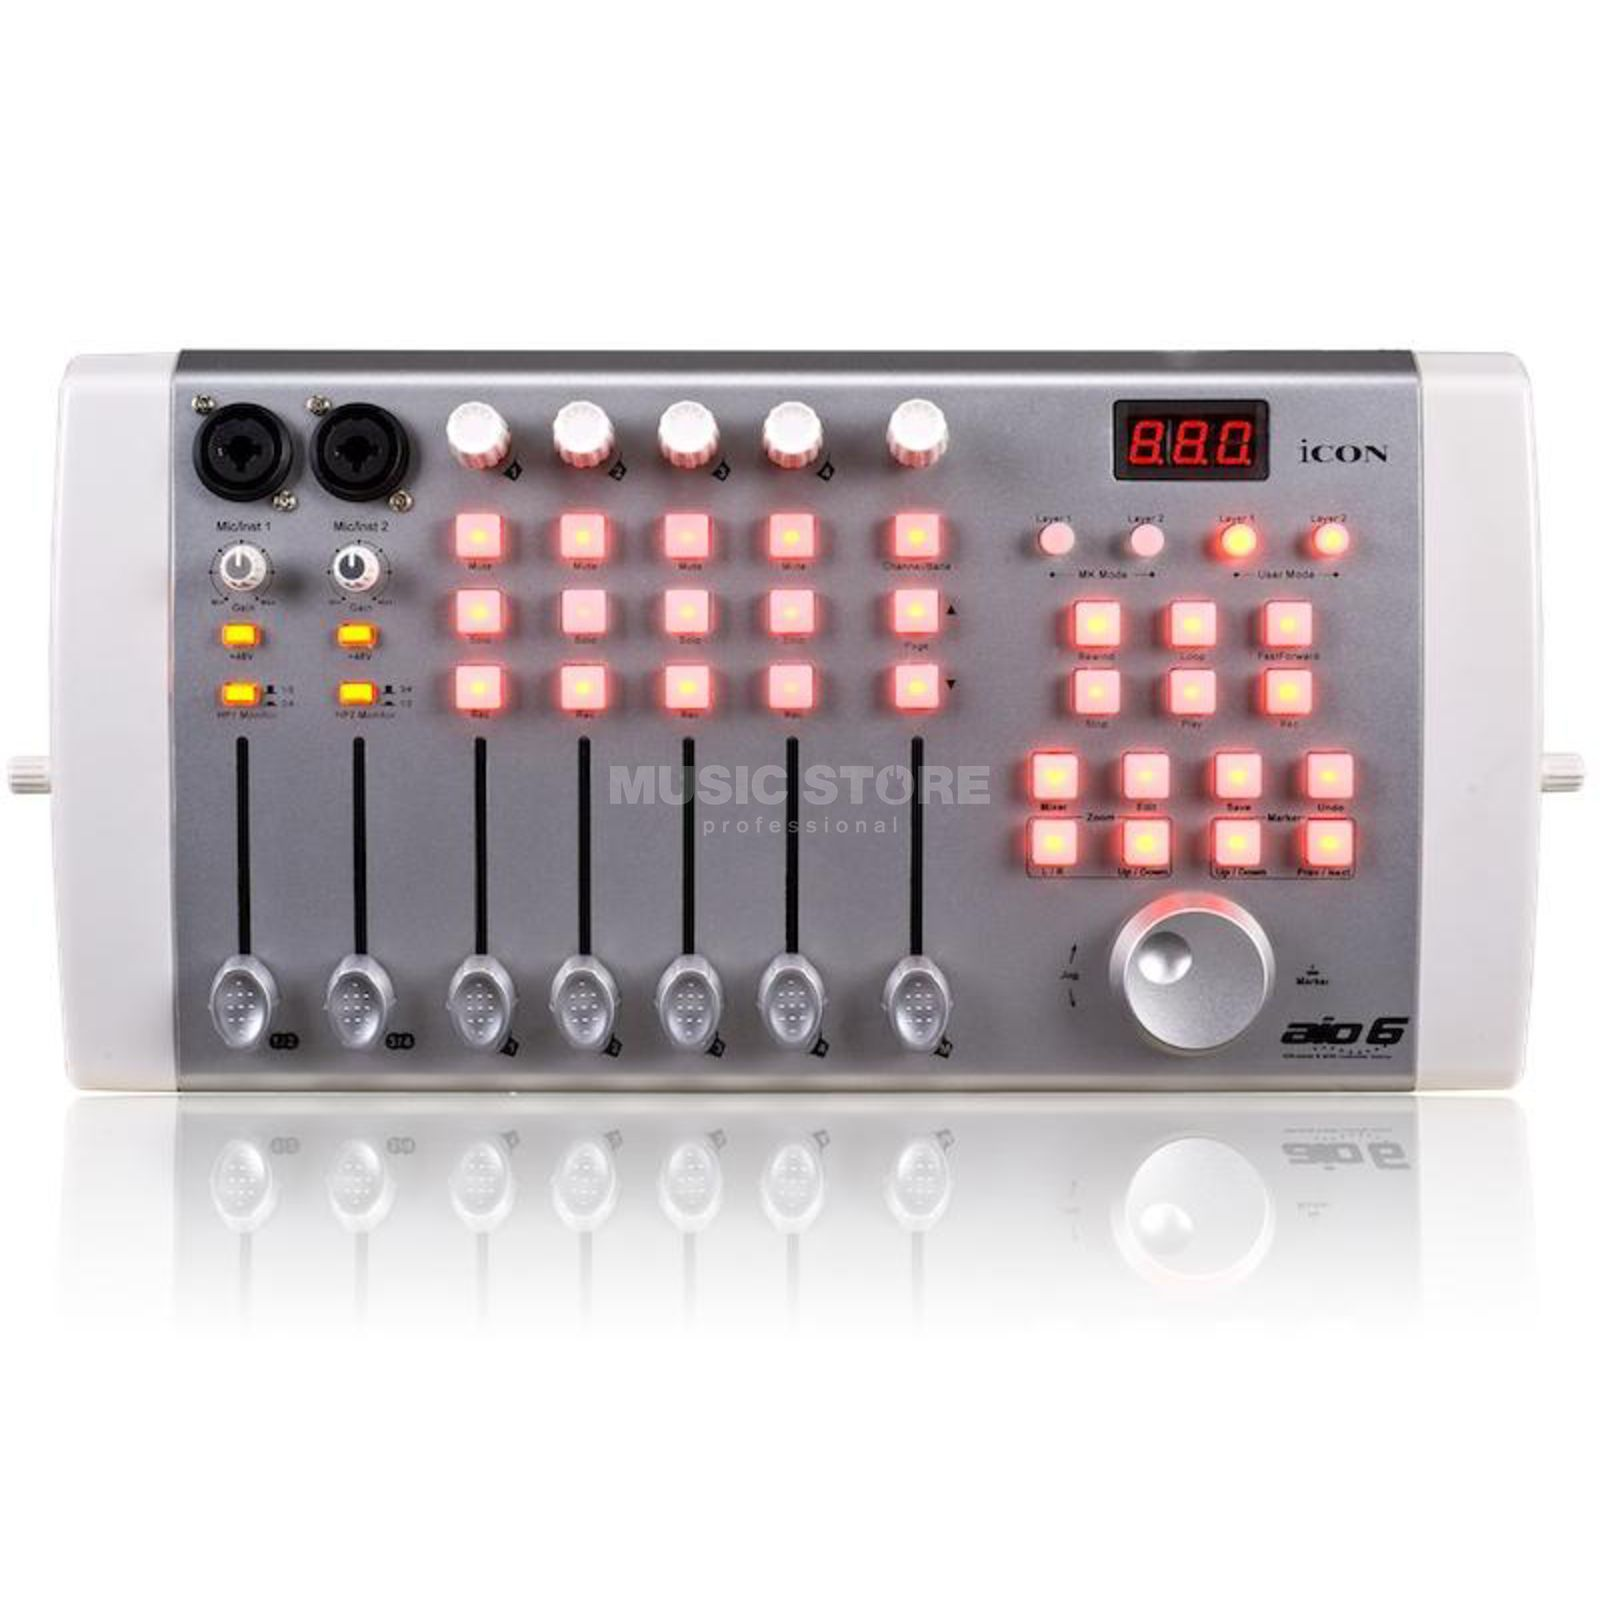 iCON AIO 6 USB Audio Interface and  DAW Controller   Produktbillede